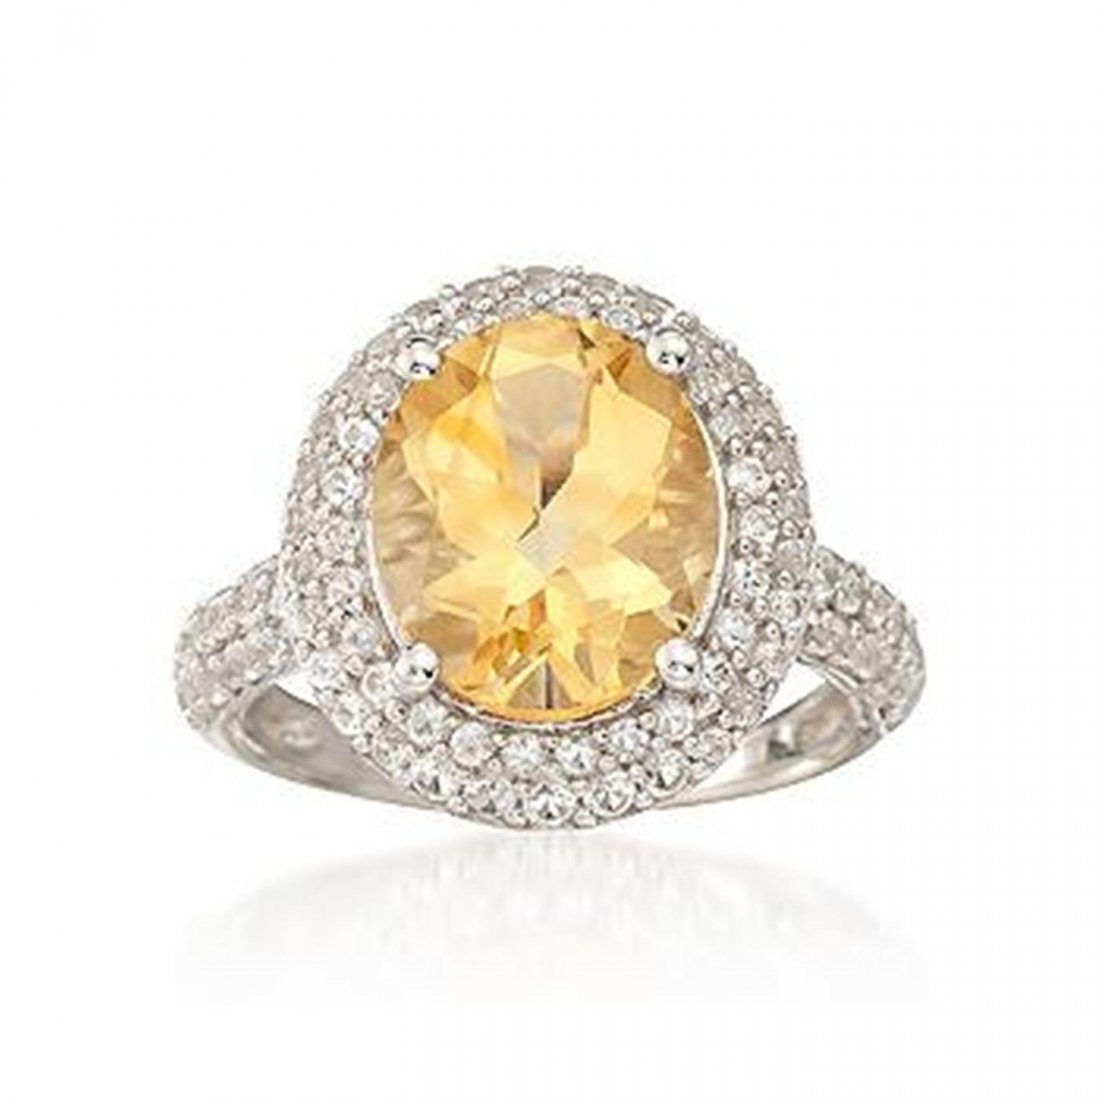 4.30 Carat Citrine Ring With 1.10 ct. t.w. Sapph.